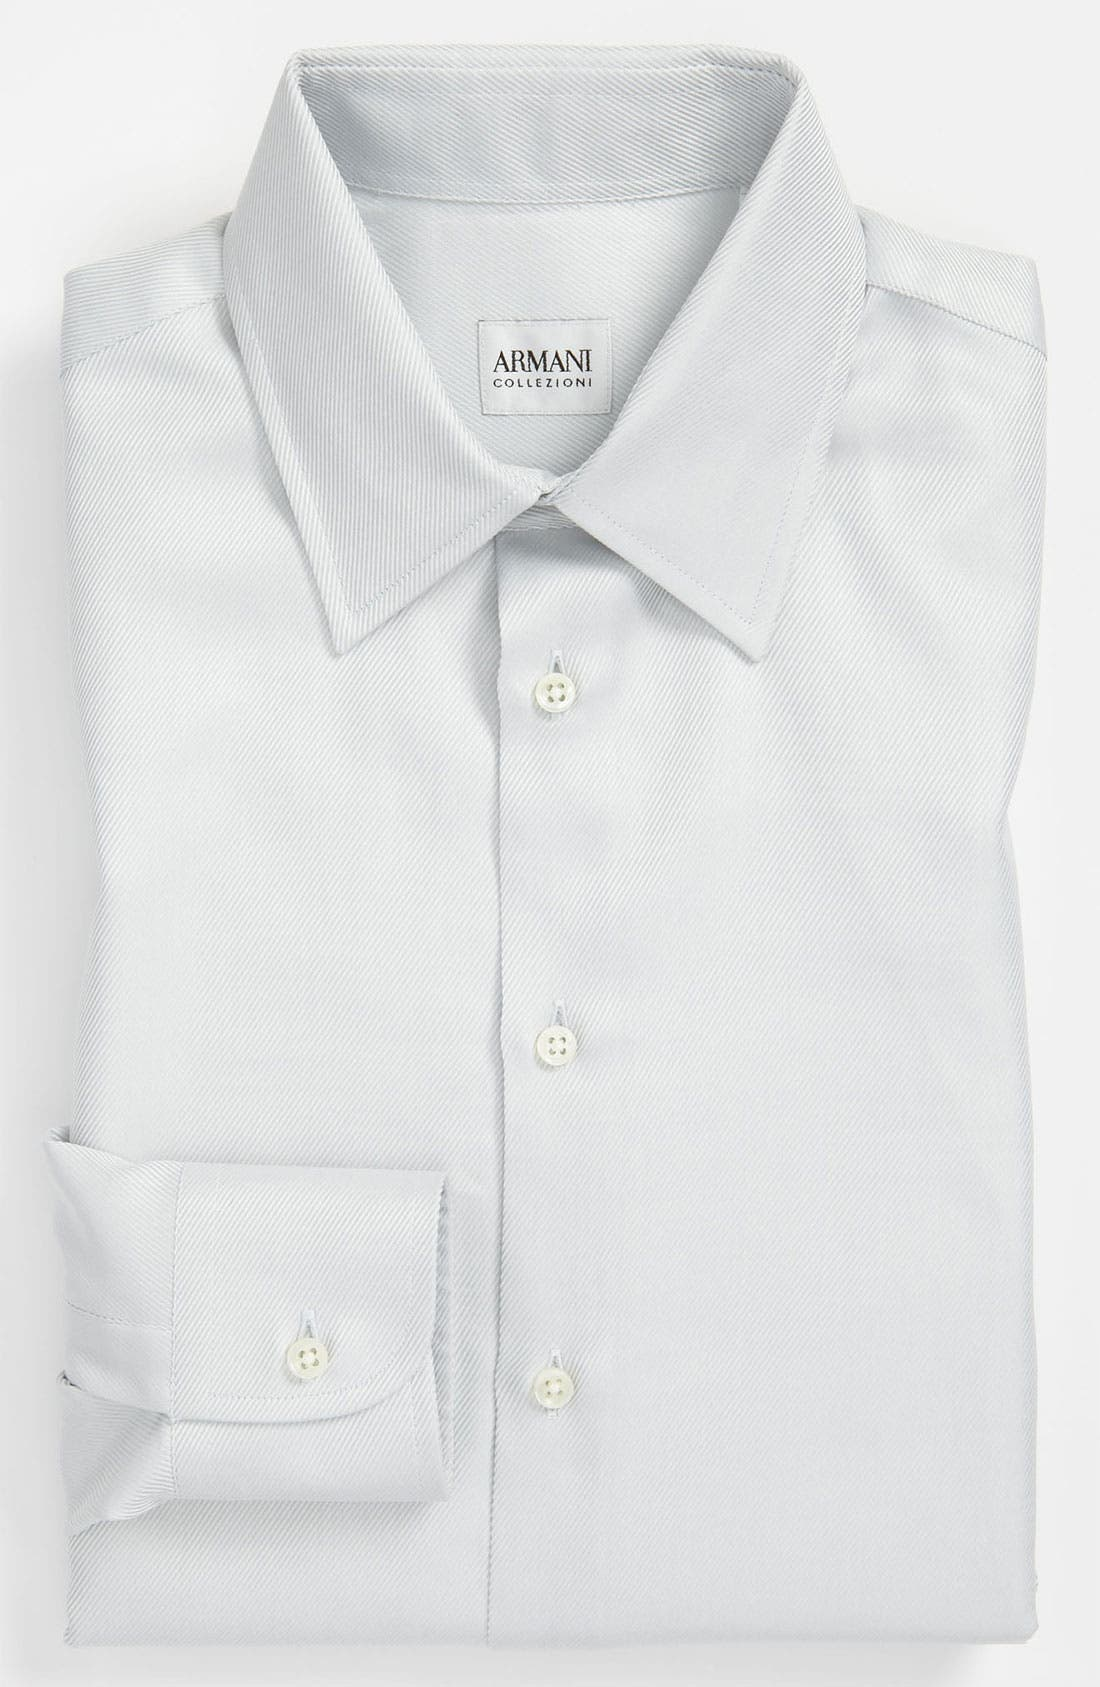 Alternate Image 1 Selected - Armani Collezioni Modern Fit Dress Shirt